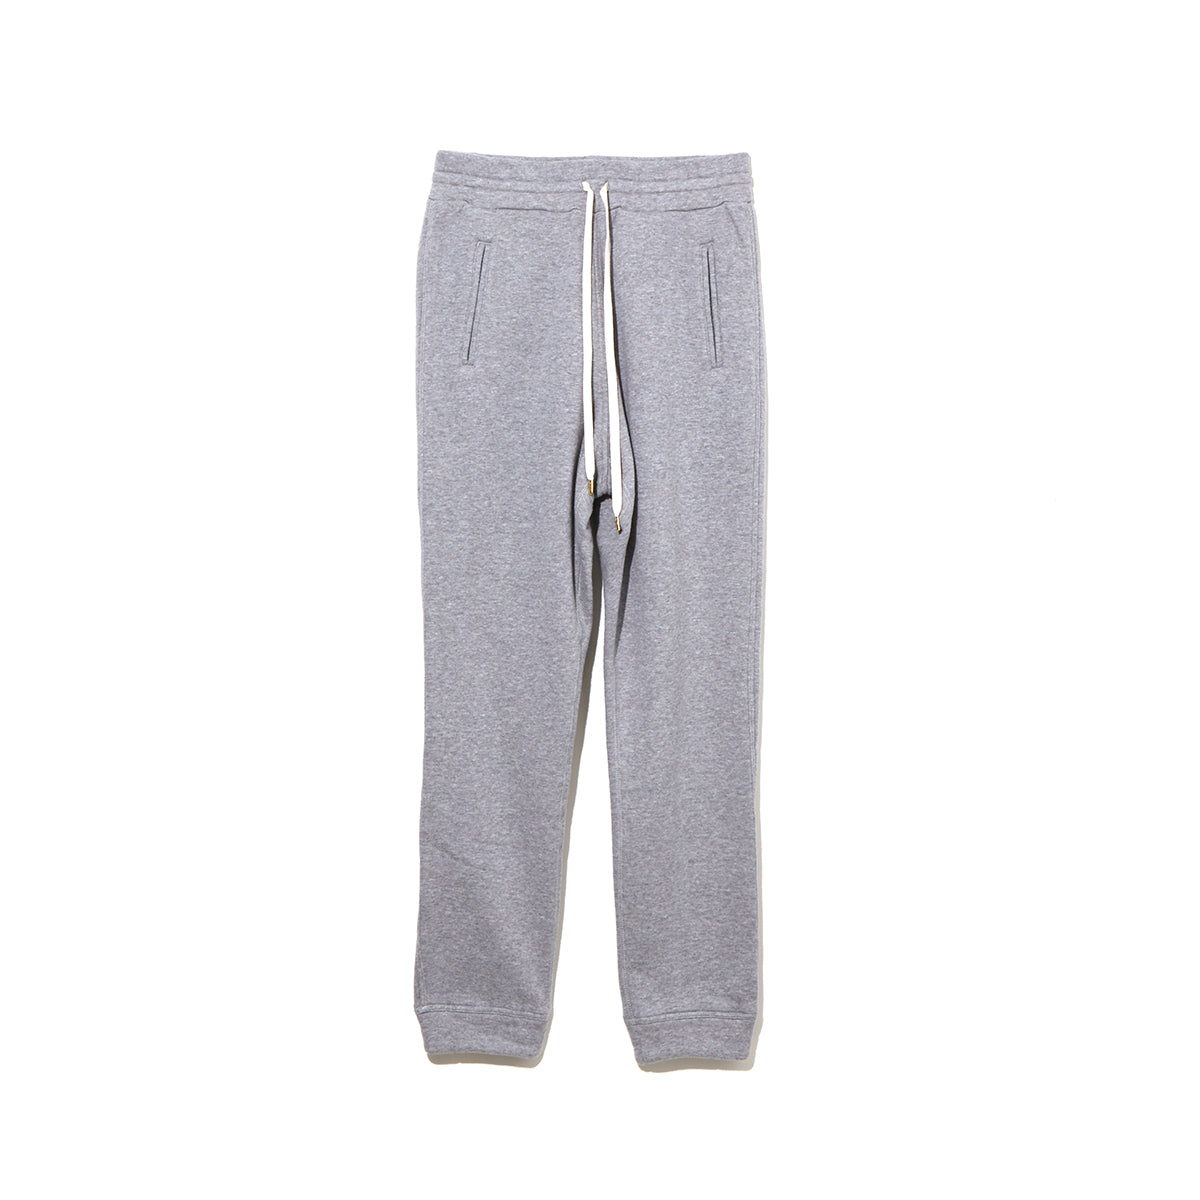 SHEEP FLEECE PANTS / GRAY (21A-NSA-CS-06)